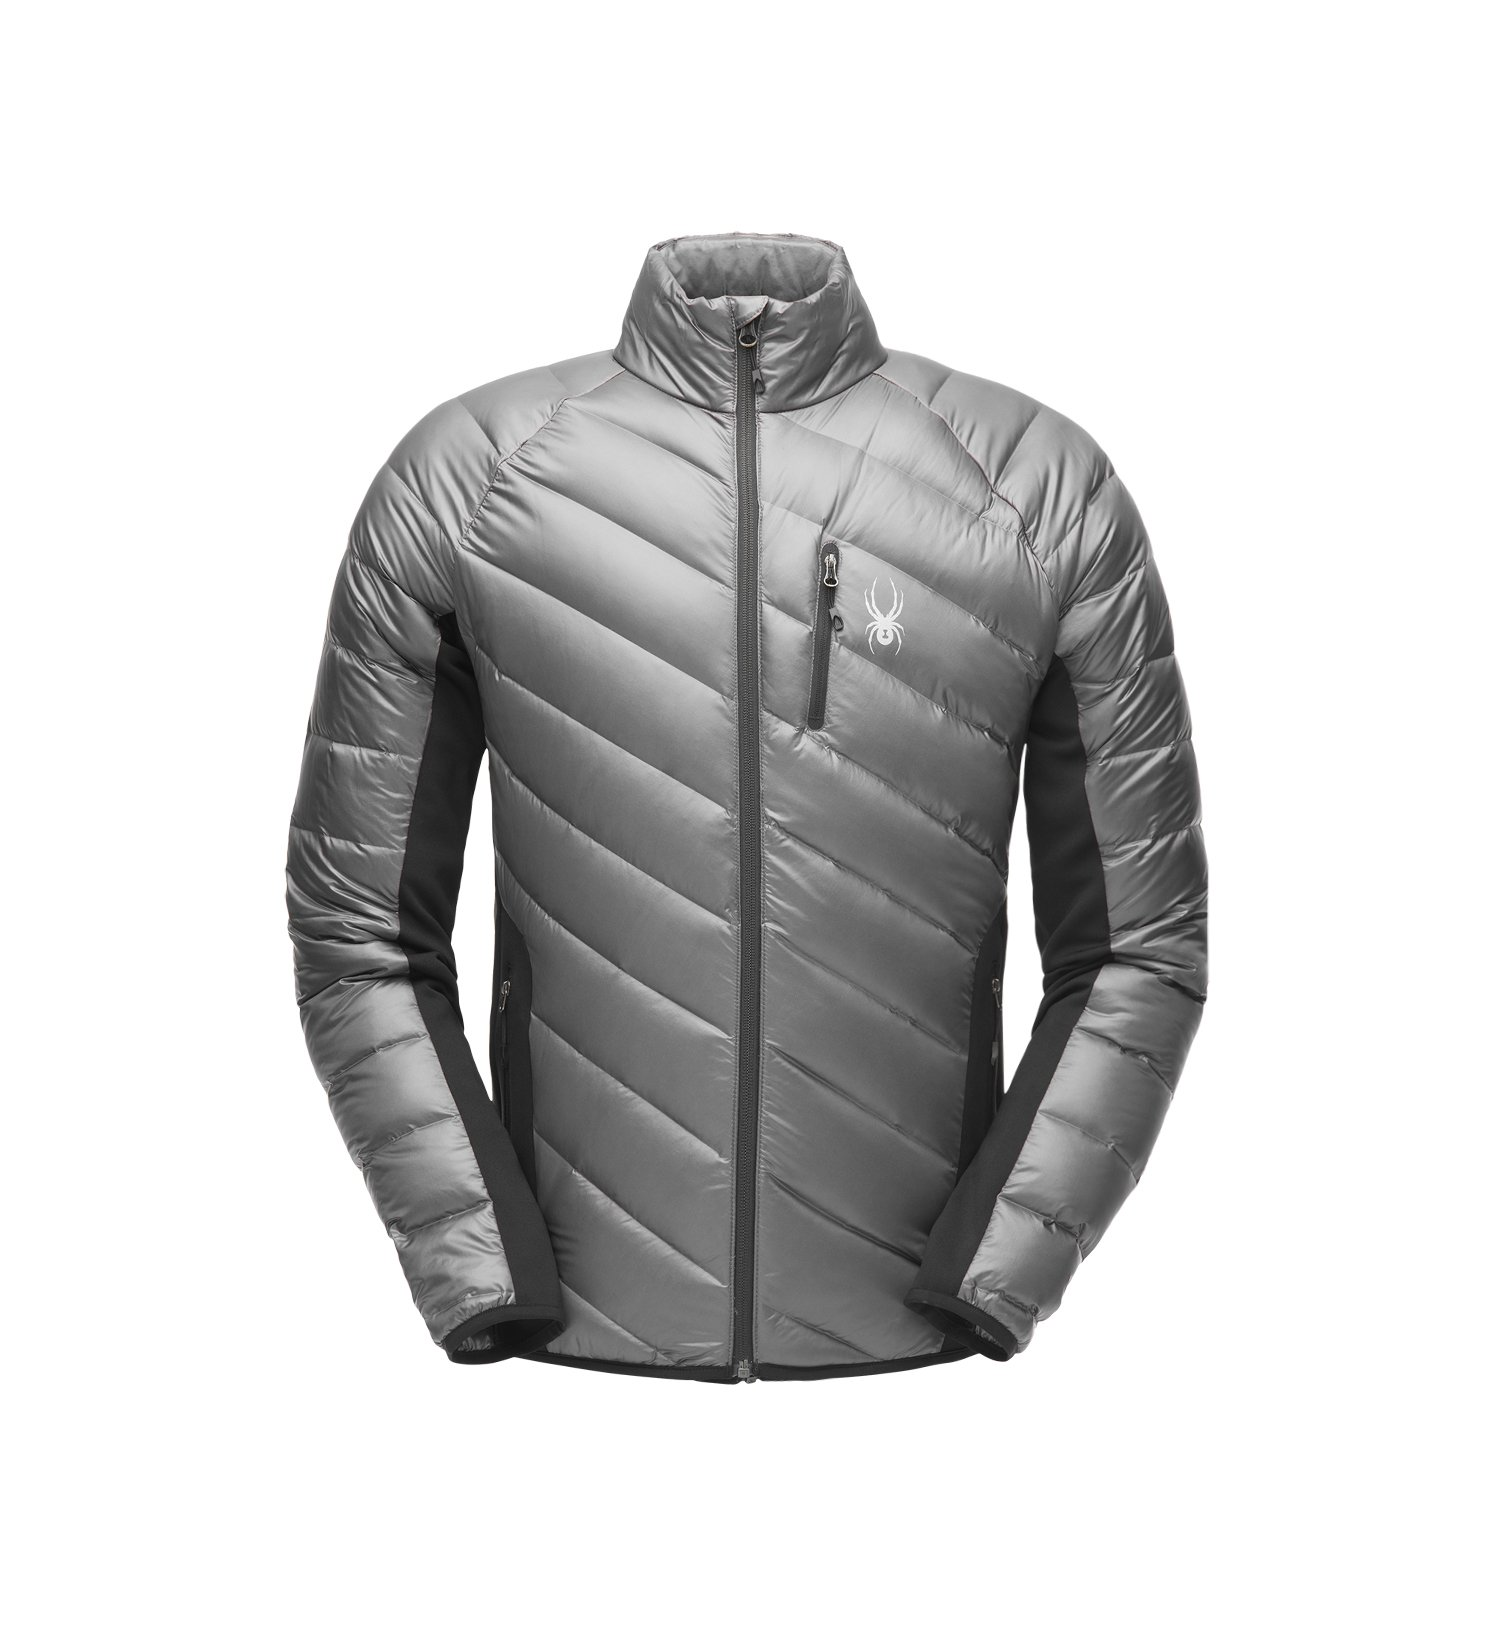 Spyder M Syrround Full Zip Jacket